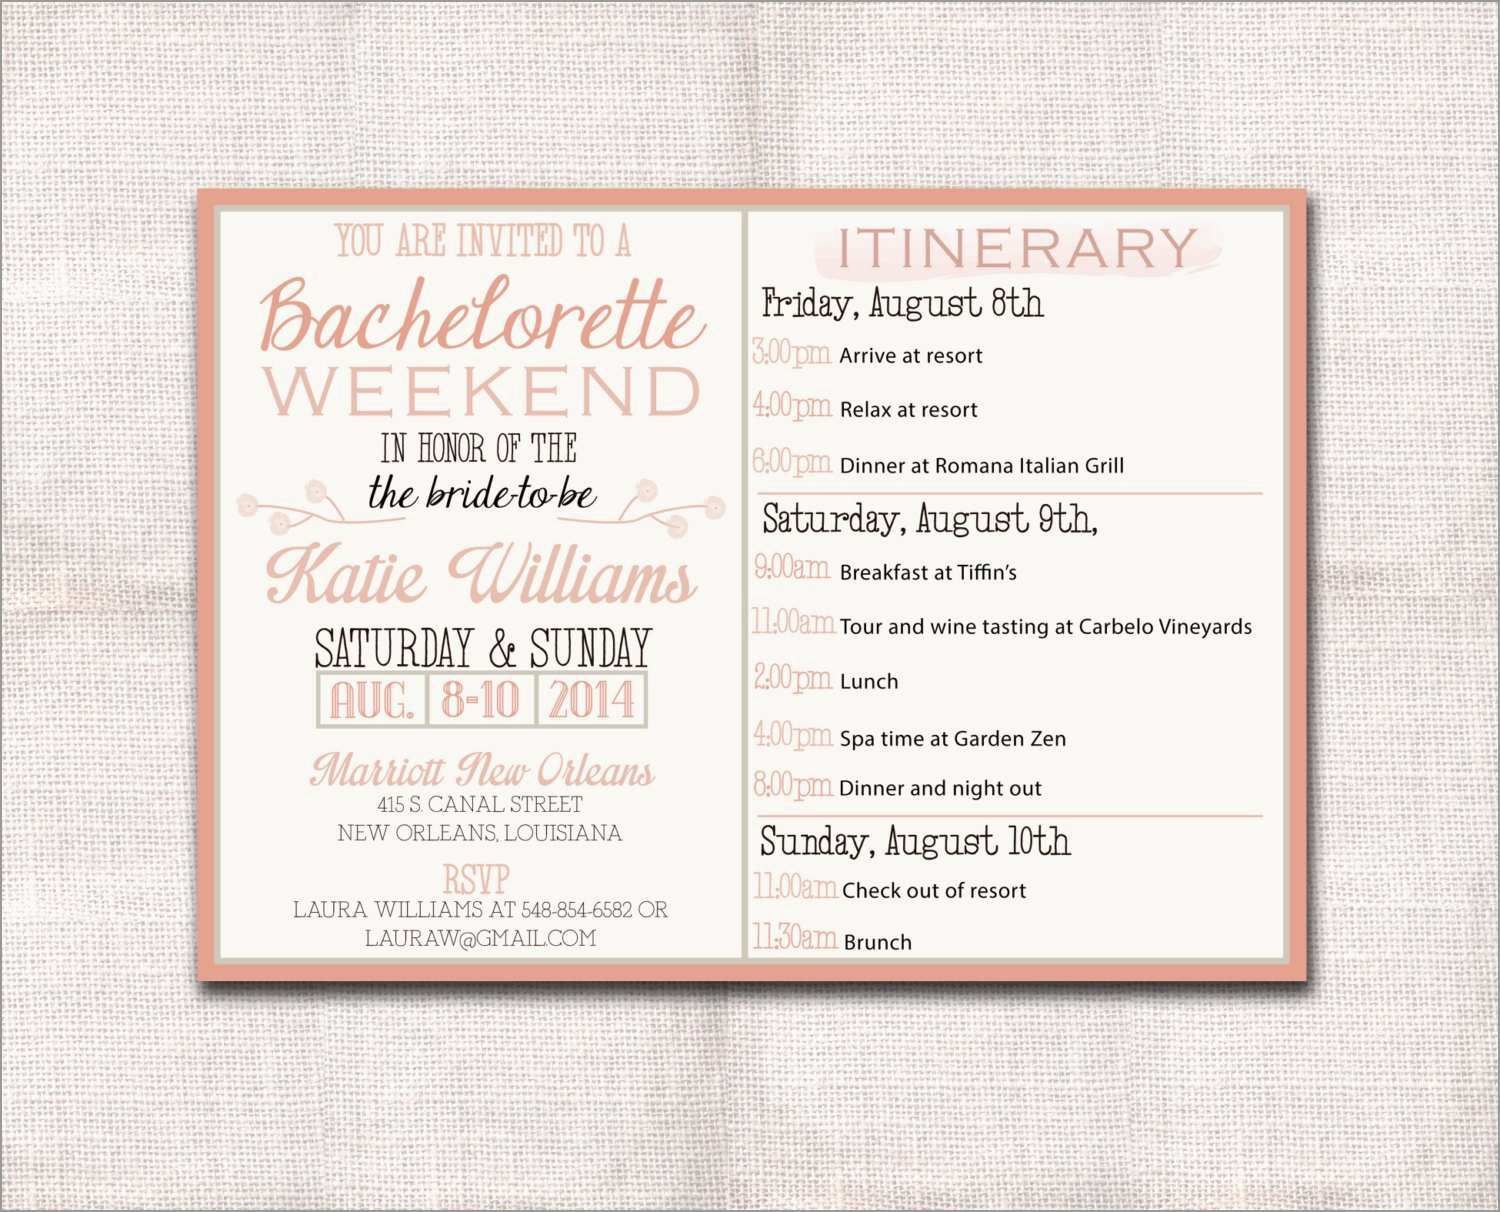 002 Magnificent Bachelorette Party Itinerary Template Free Picture  DownloadFull